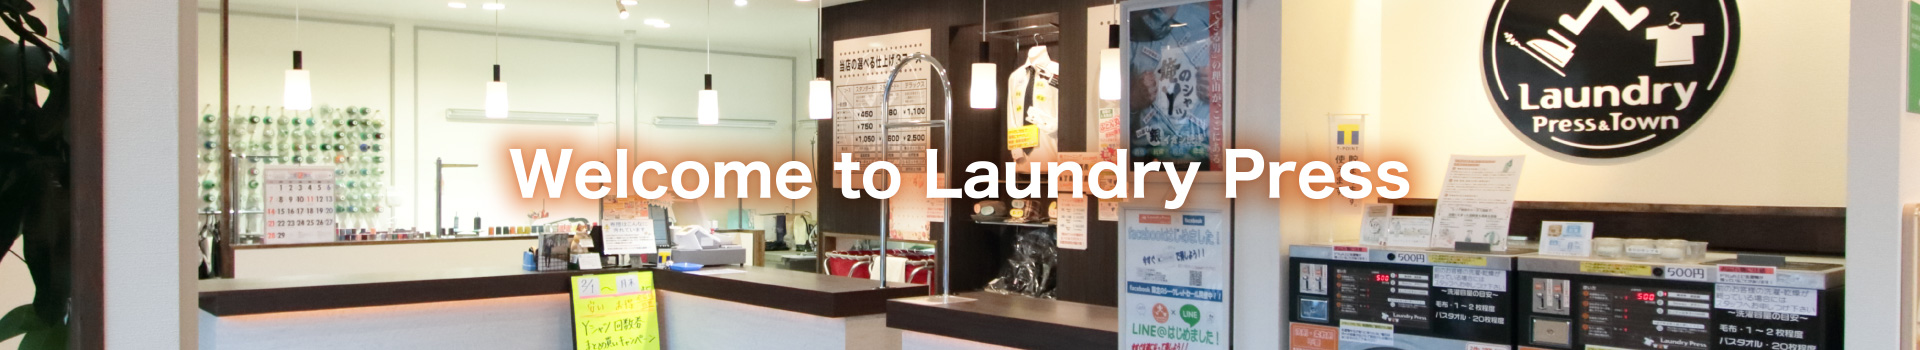 Welcome to Laundry Press